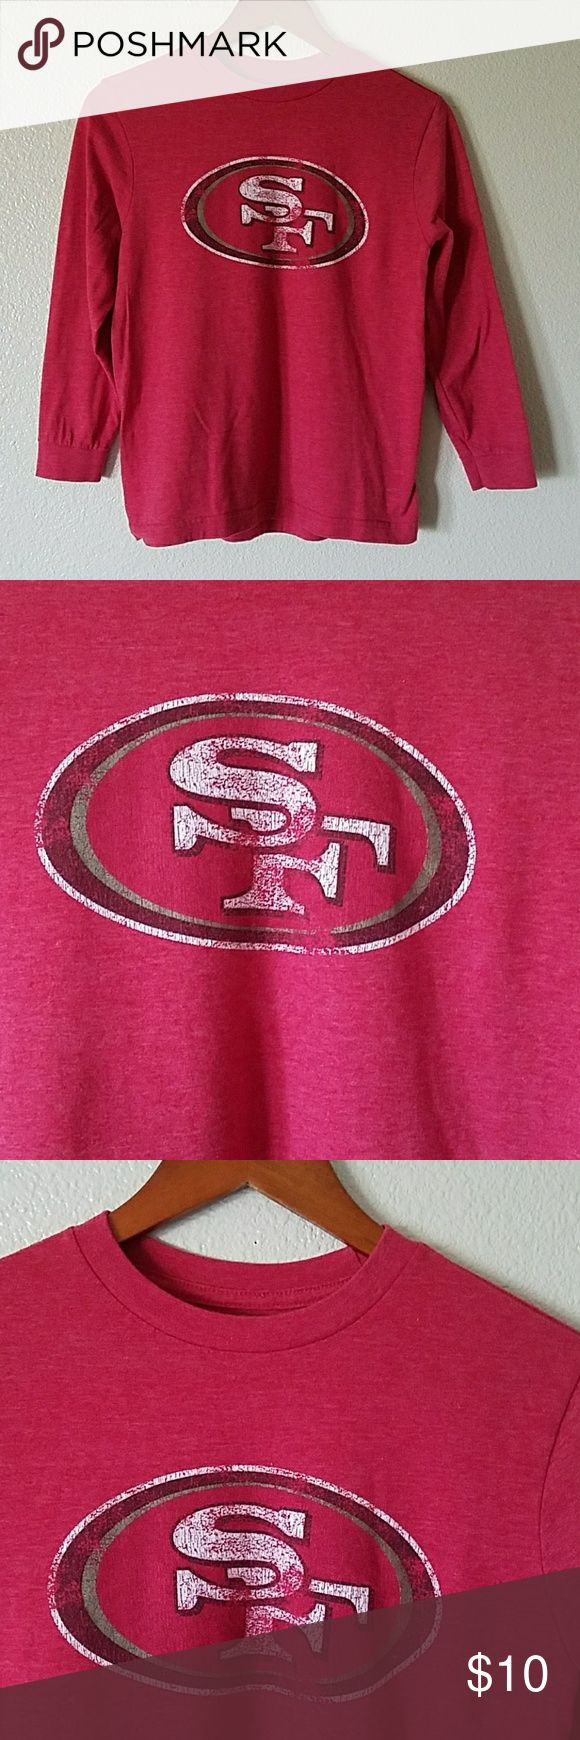 NFL Ssn Francisco 49ers long sleeves t-shirt sz 8 NFL San Francisco 49ers long sleeves t-shirt// excellent used condition// with SF vintage look logo in front// 50% Cotton and 50% Polyester NFL Shirts & Tops Tees - Long Sleeve